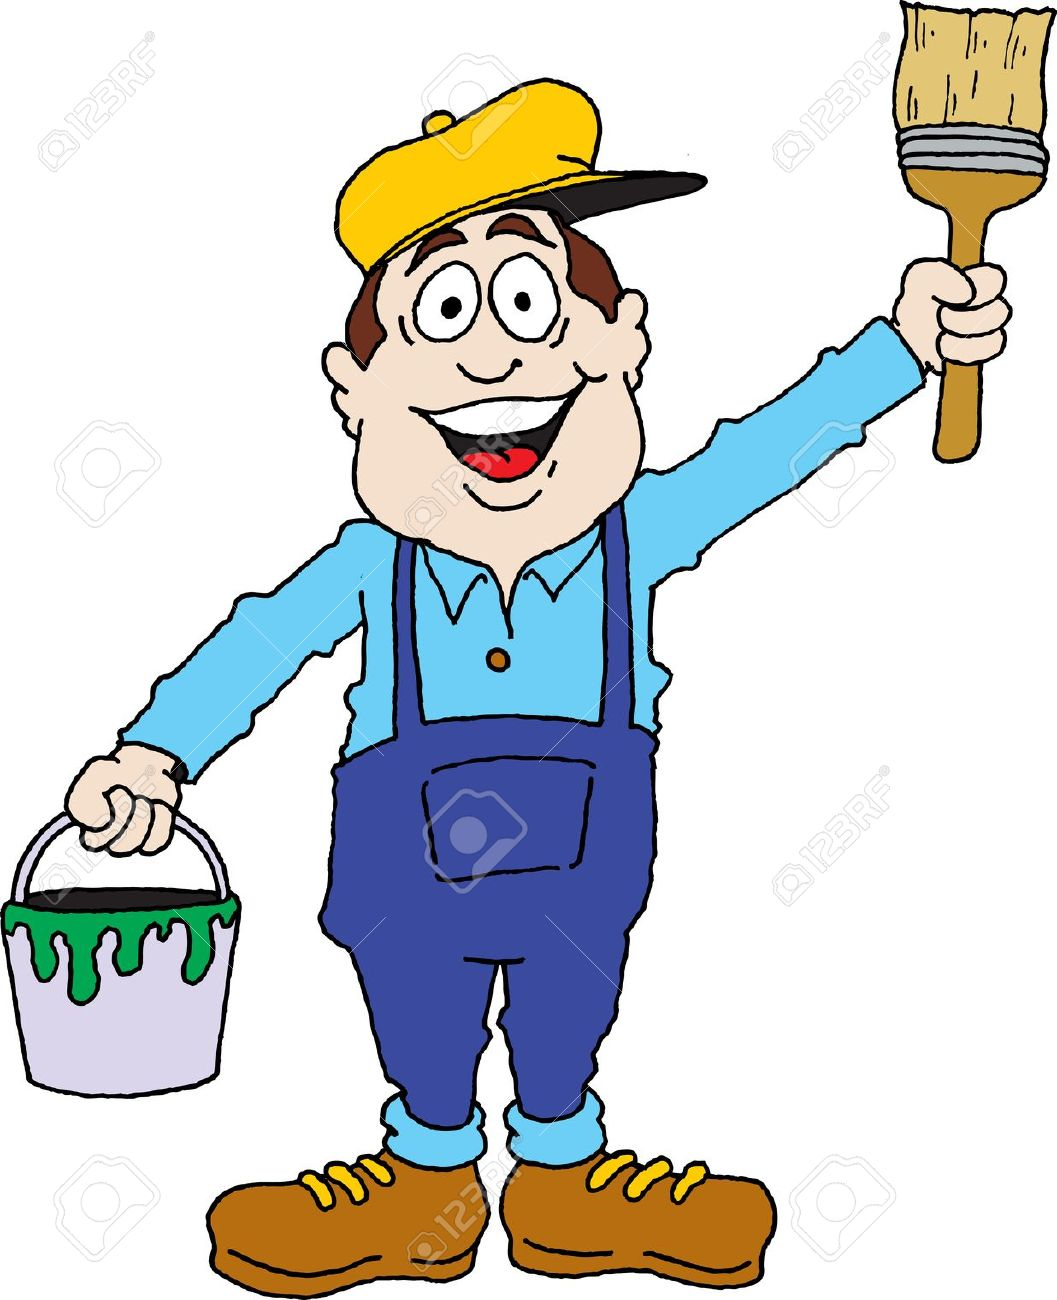 Painting And Decorating Clipart.